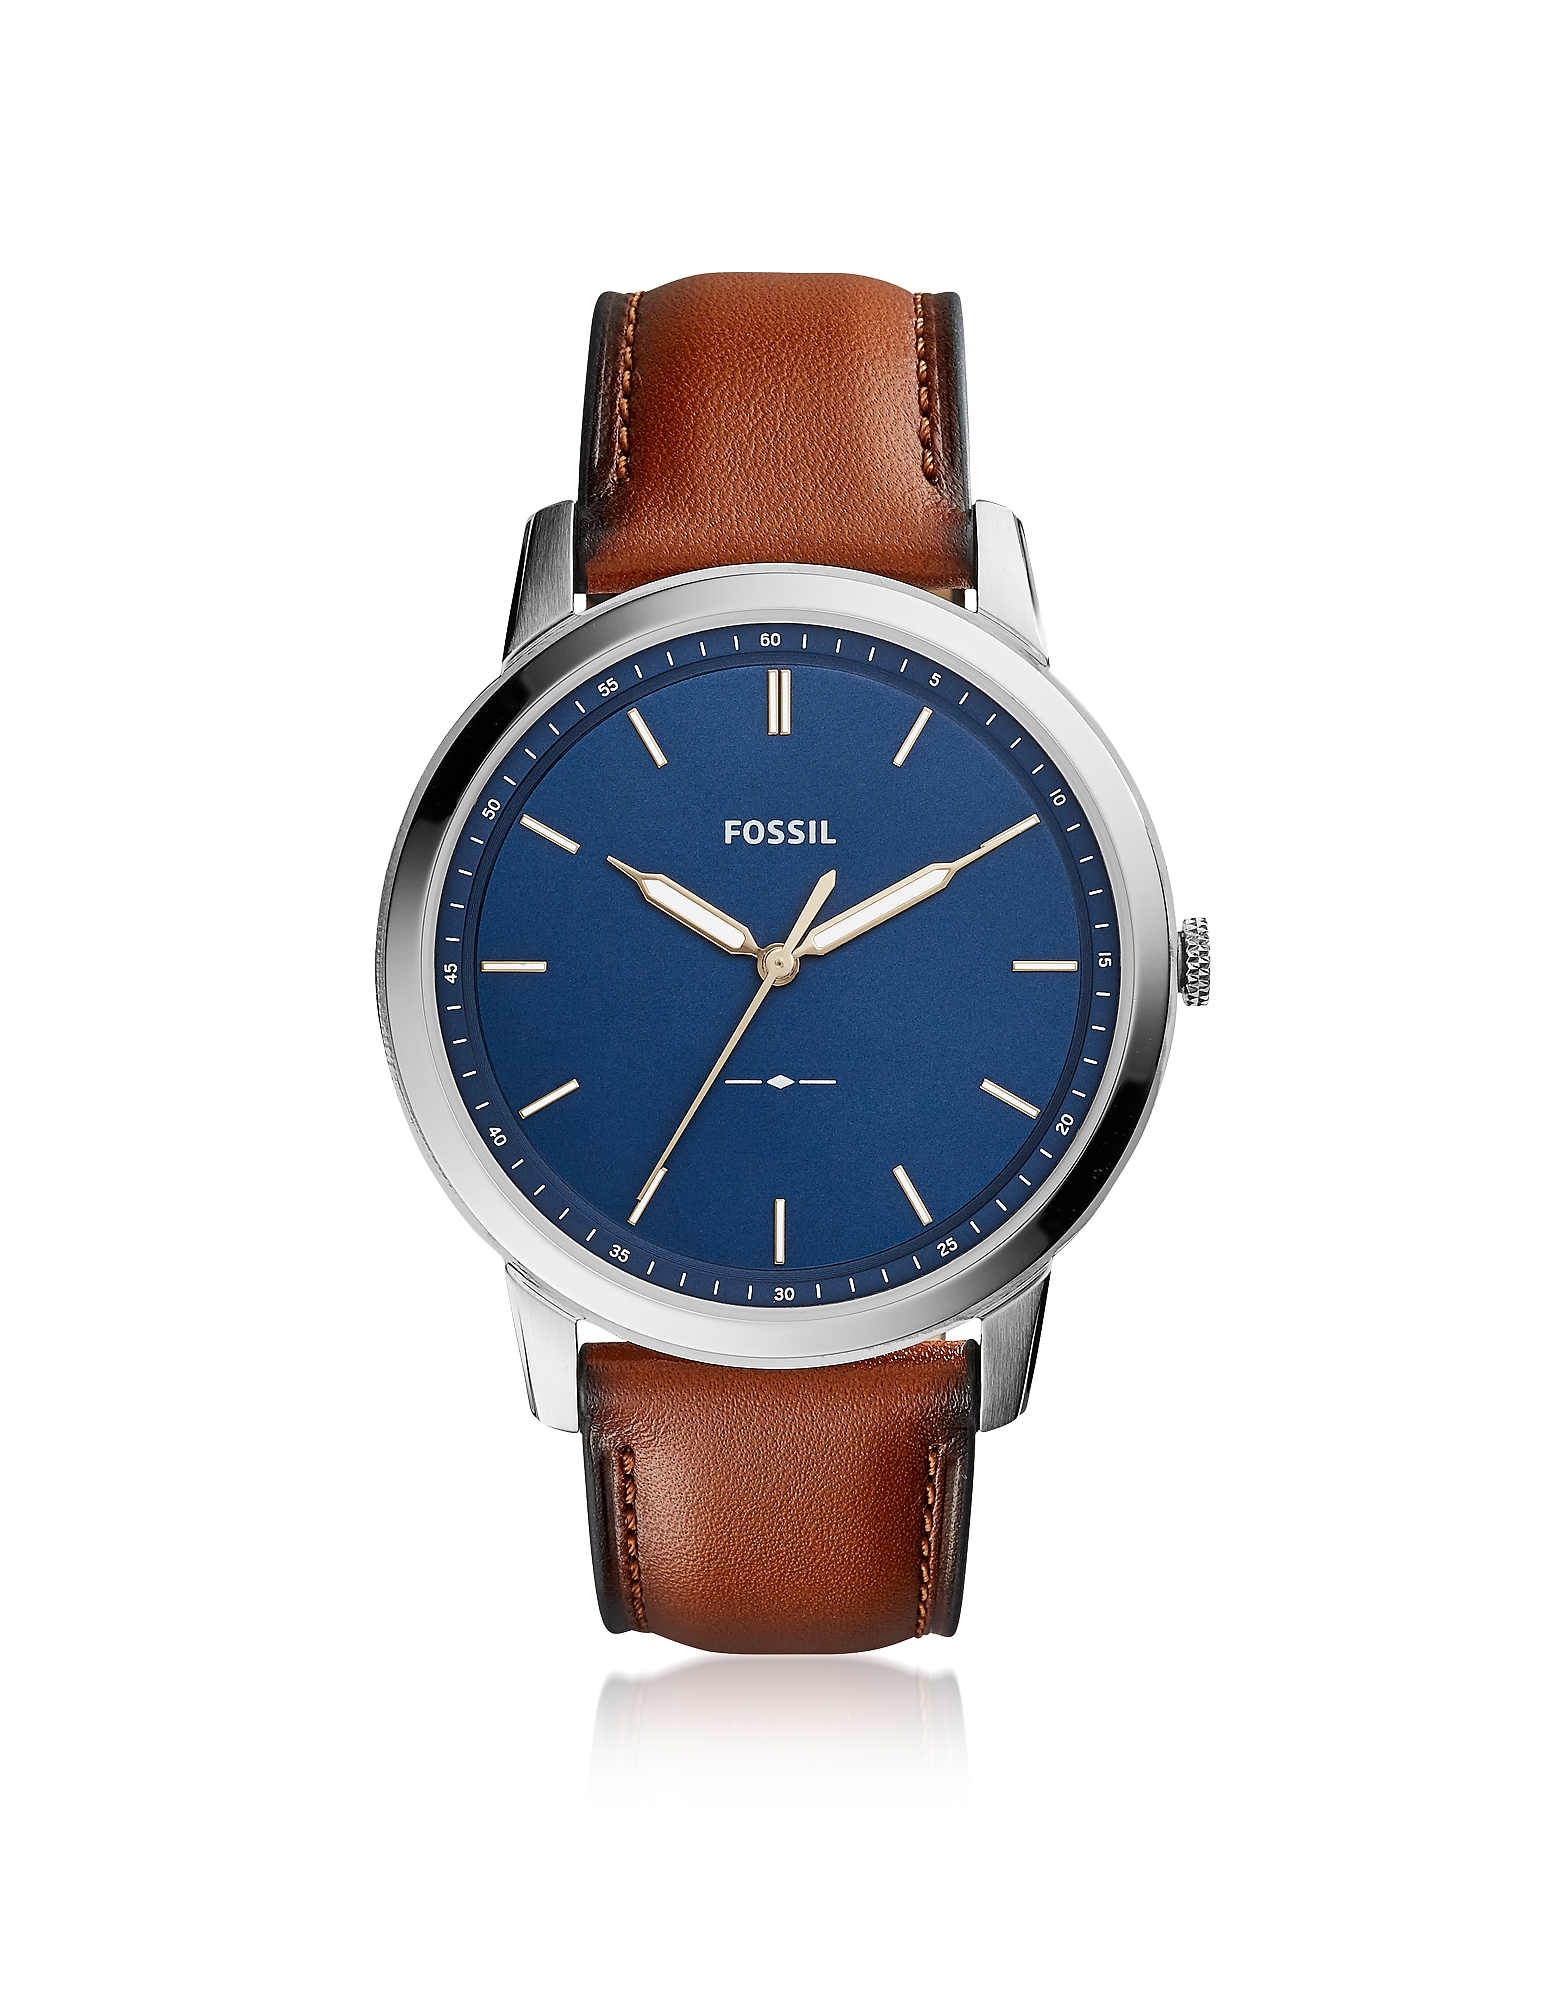 Fossil Men's Watches, The Minimalist Slim Three-Hand Light Brown Leather and Blue Dial Men's Watch